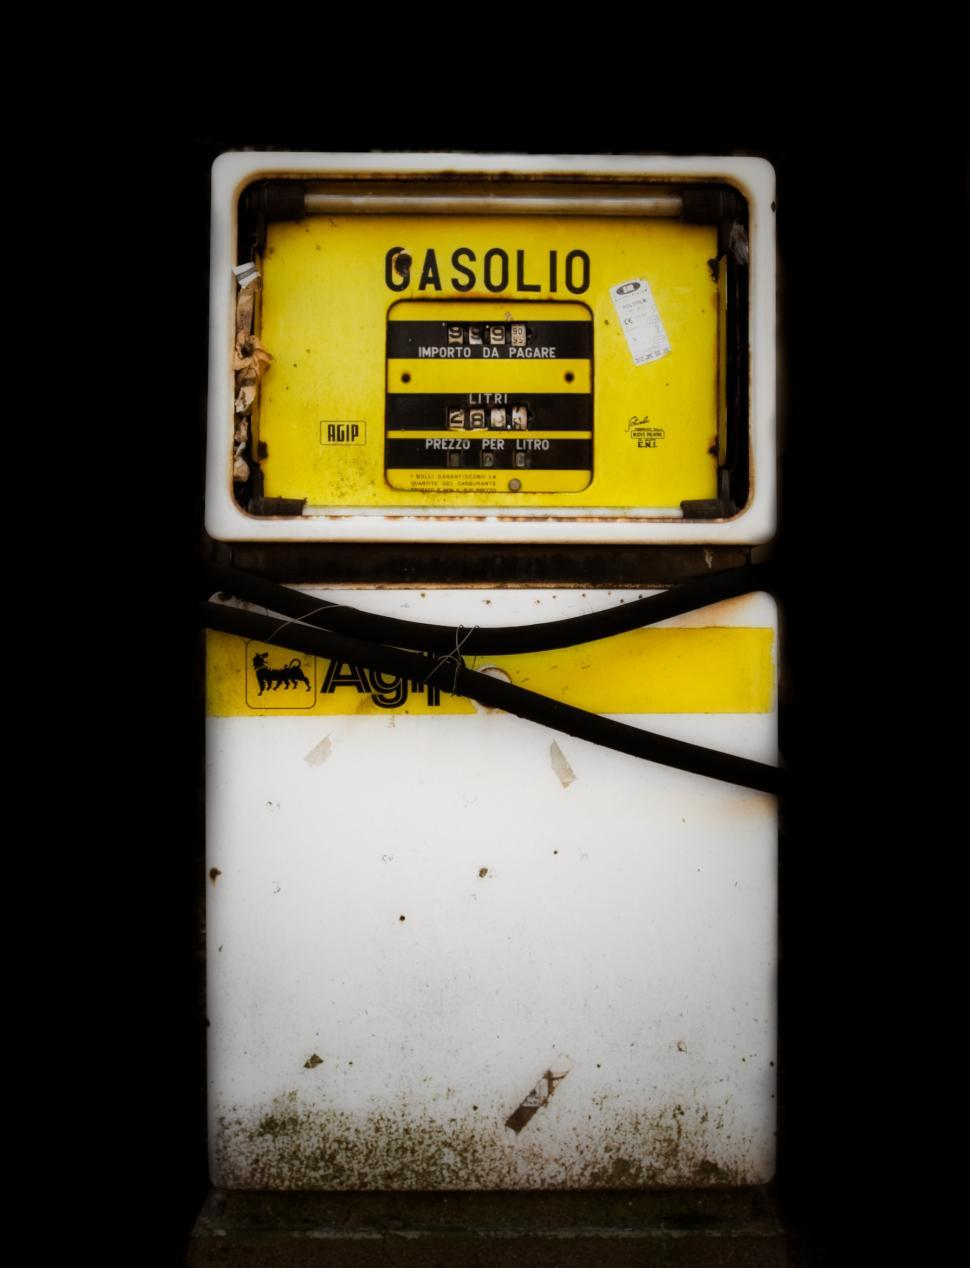 Download Free Stock HD Photo of Gasolio Online